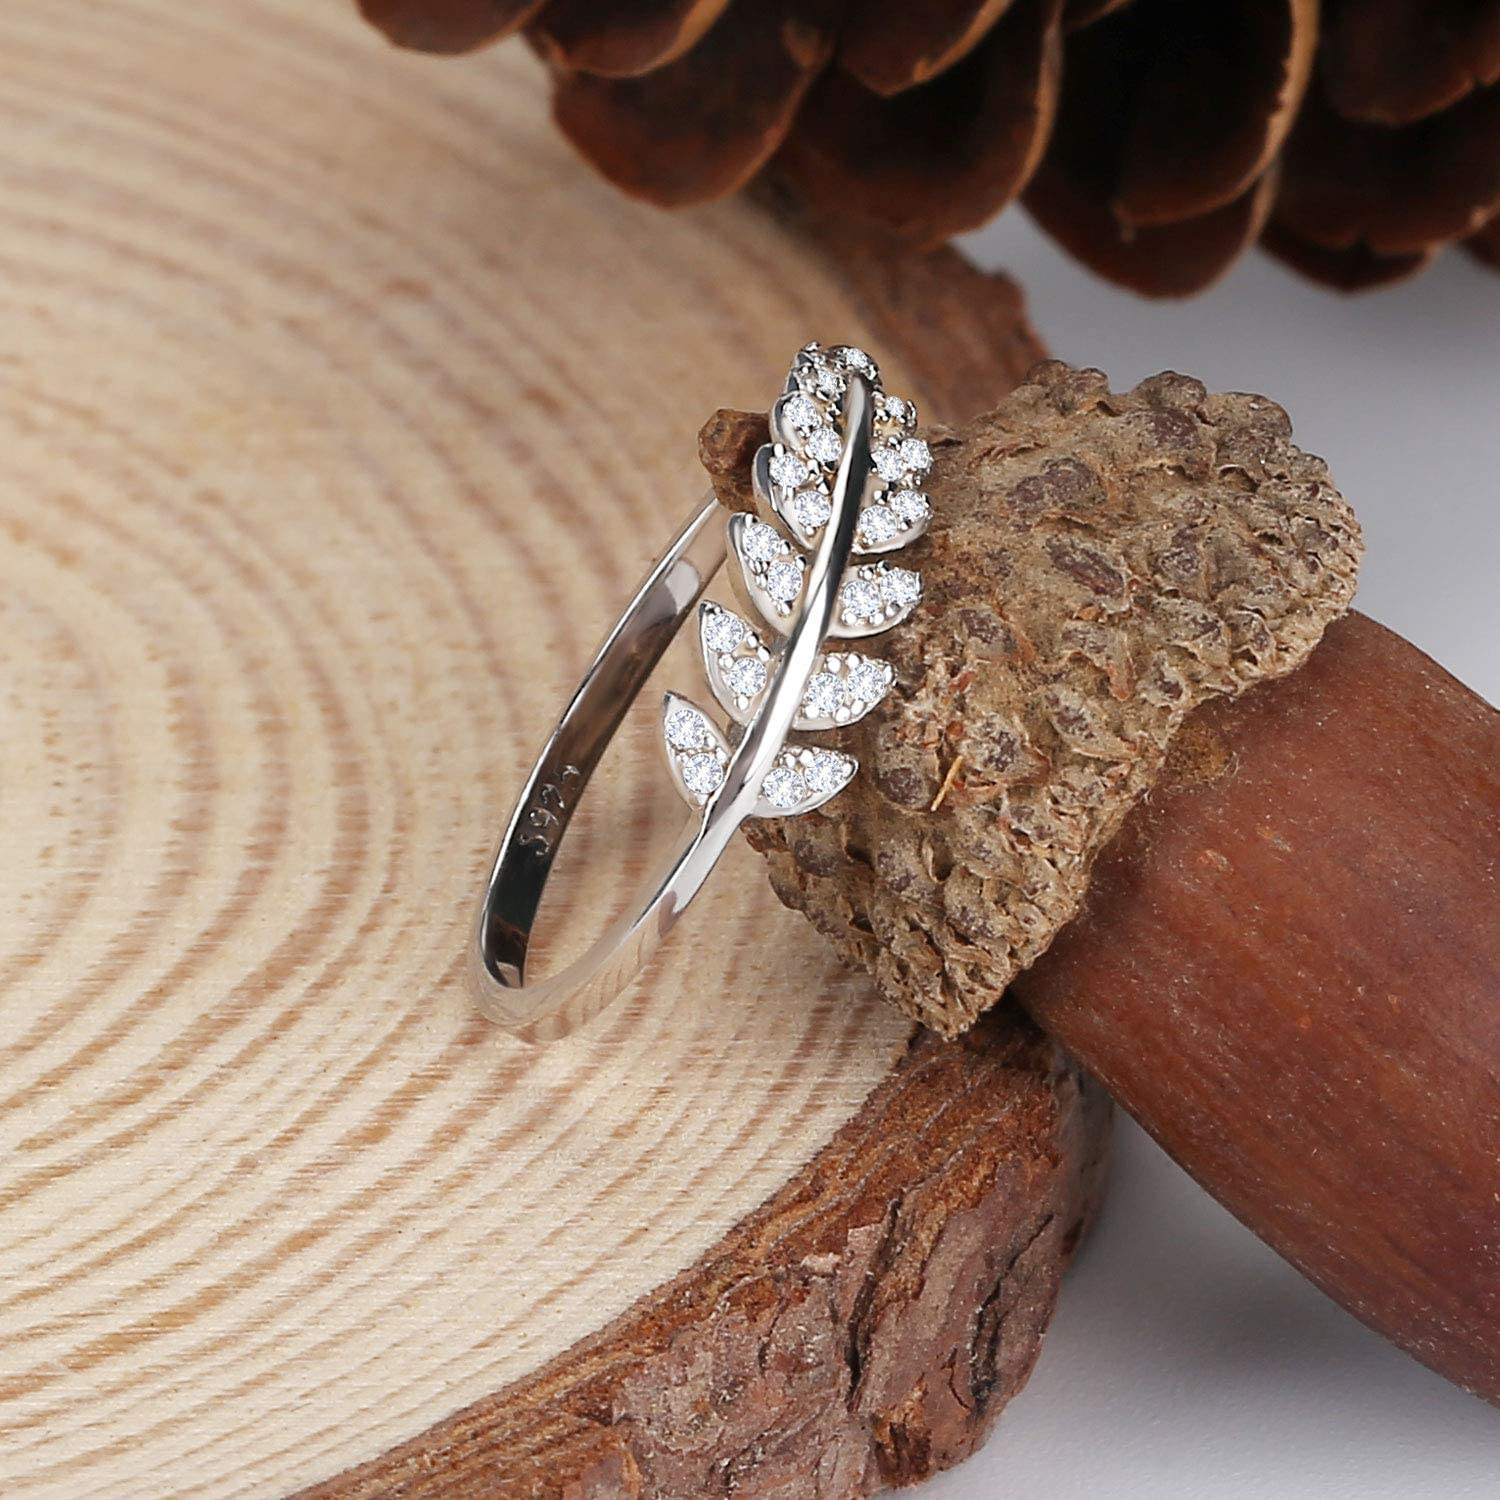 Lancharmed 925 Sterling Silver Olive Leaf Open Cuff Ring Promise Engagement Tail Rings Paved CZ Stones Wrap Gifts for Bridesmaid Bride Women Girls Teens